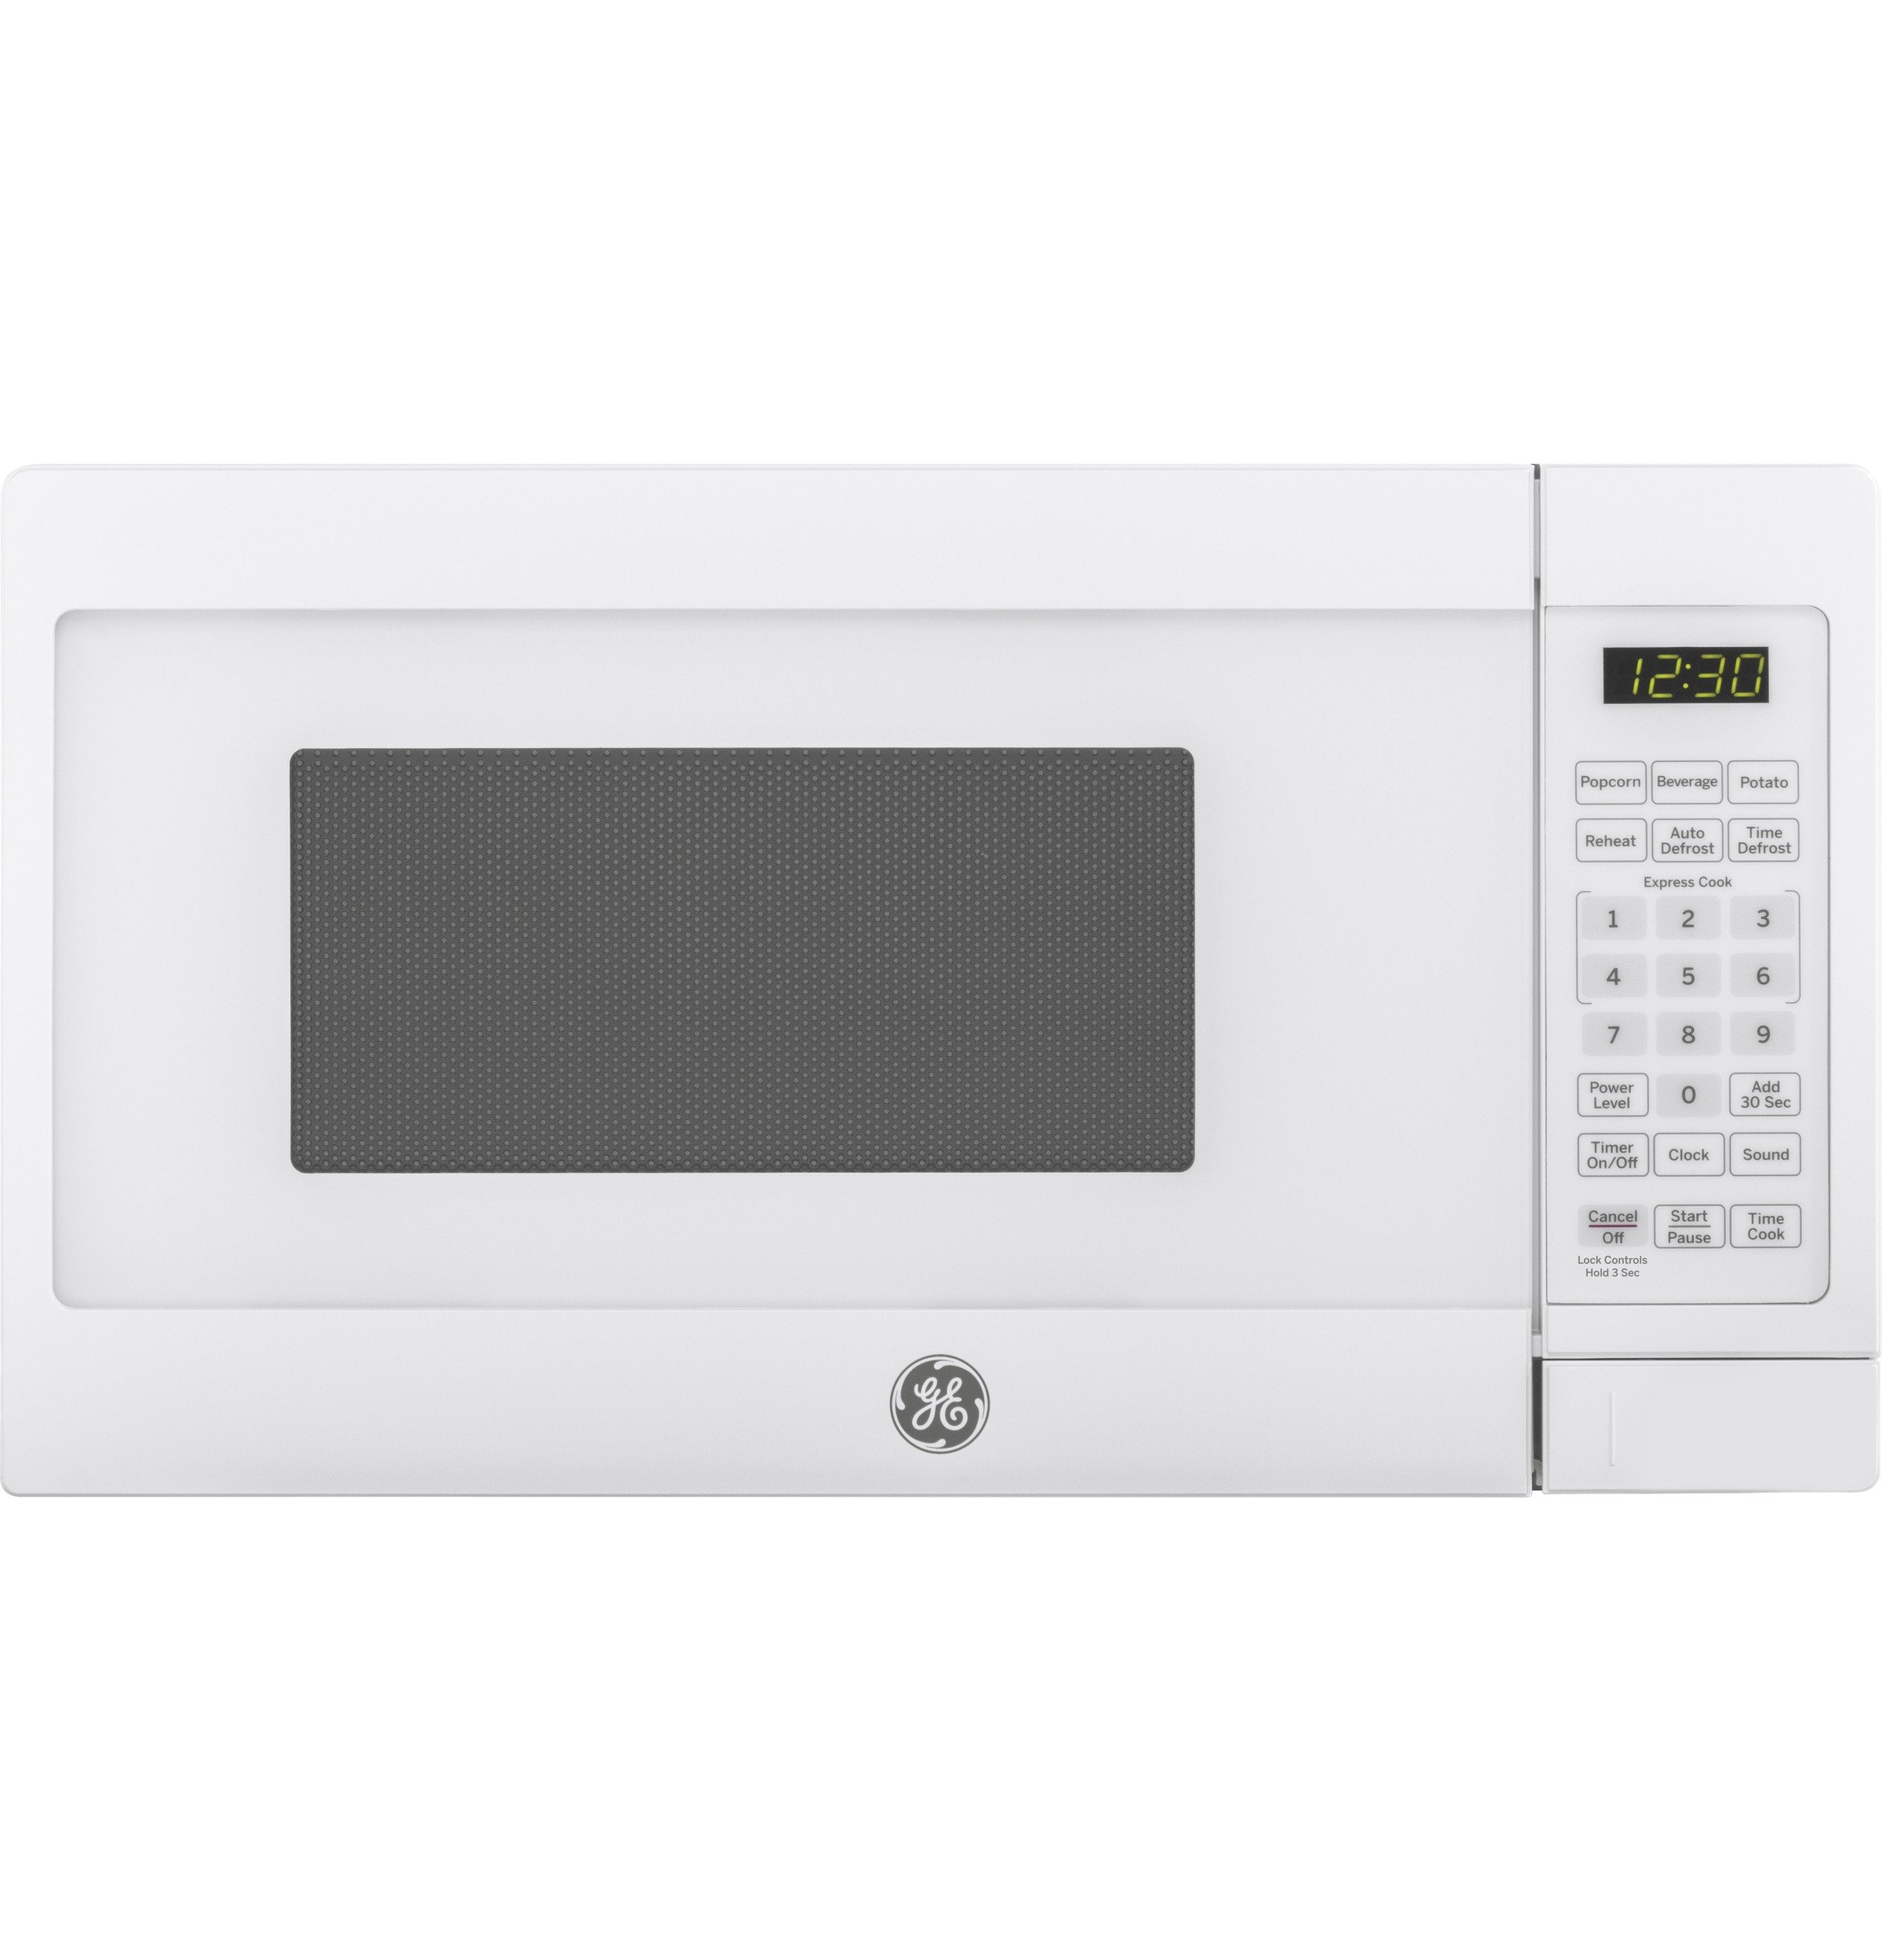 GE JES1072DMWW 0.7 cu. ft. Capacity Countertop Microwave Oven, White